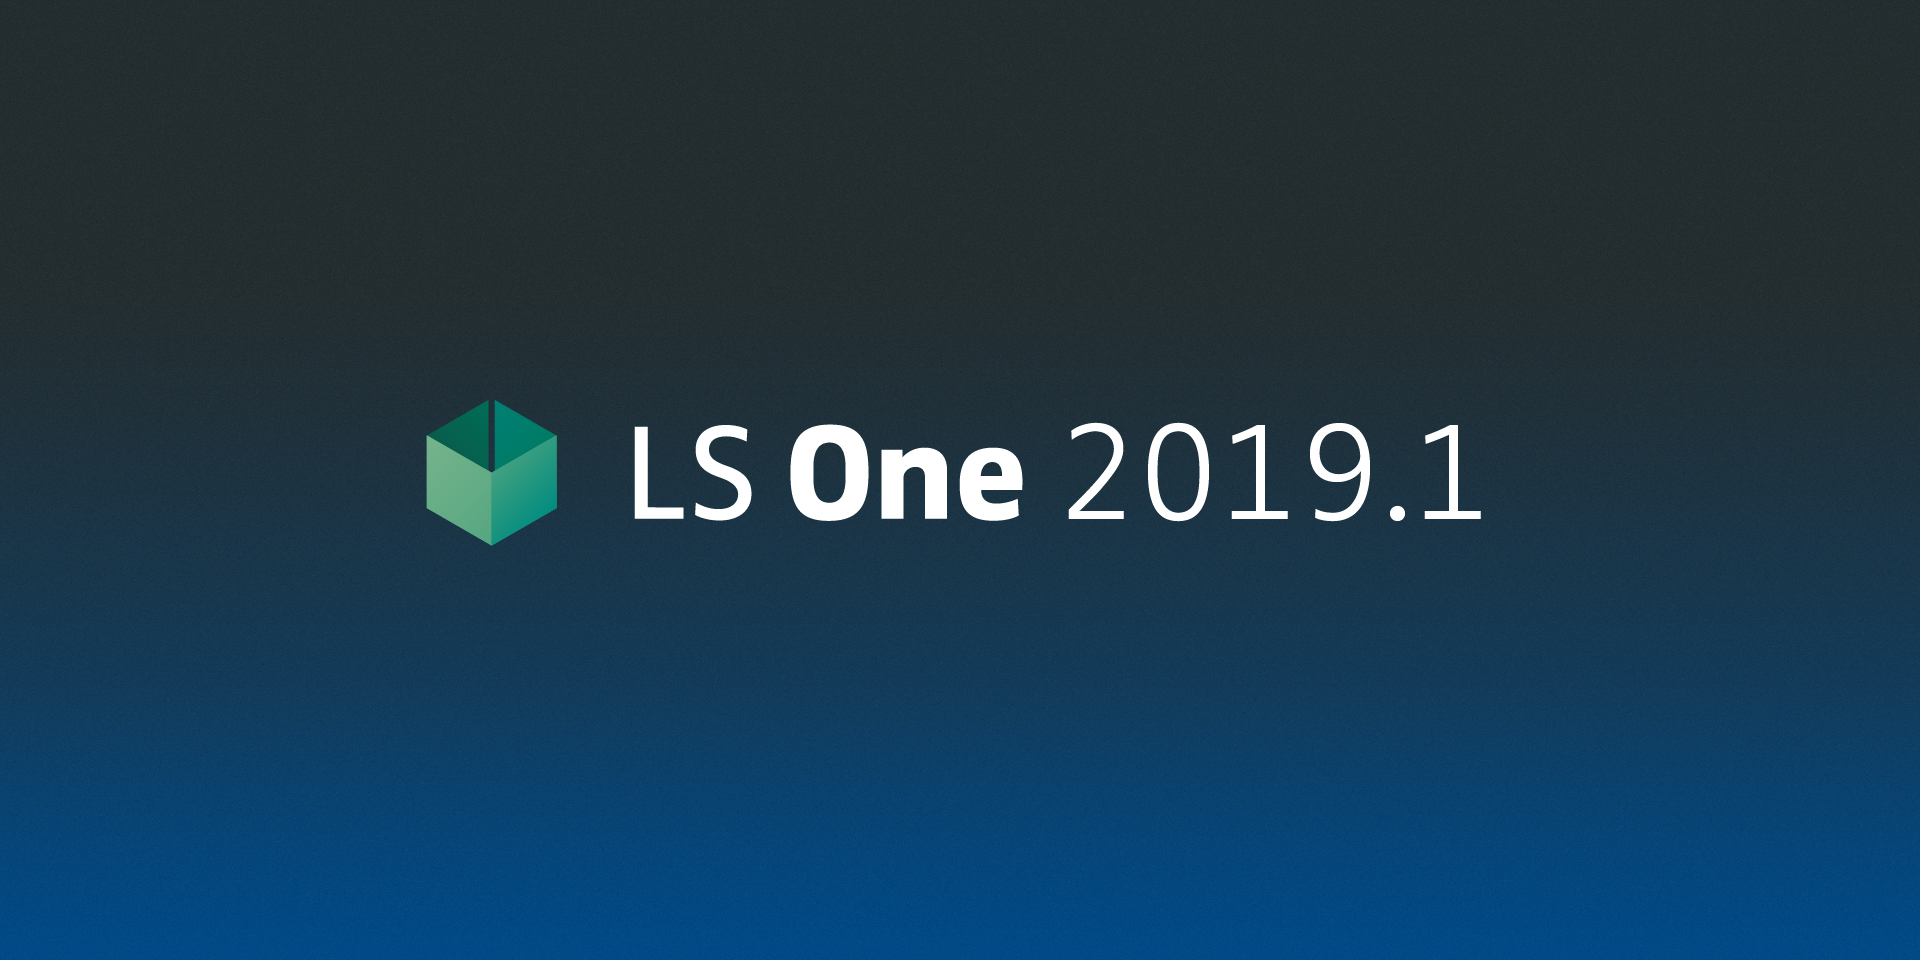 LS One 2019.1: improved performance, now integrated to SAP HANA